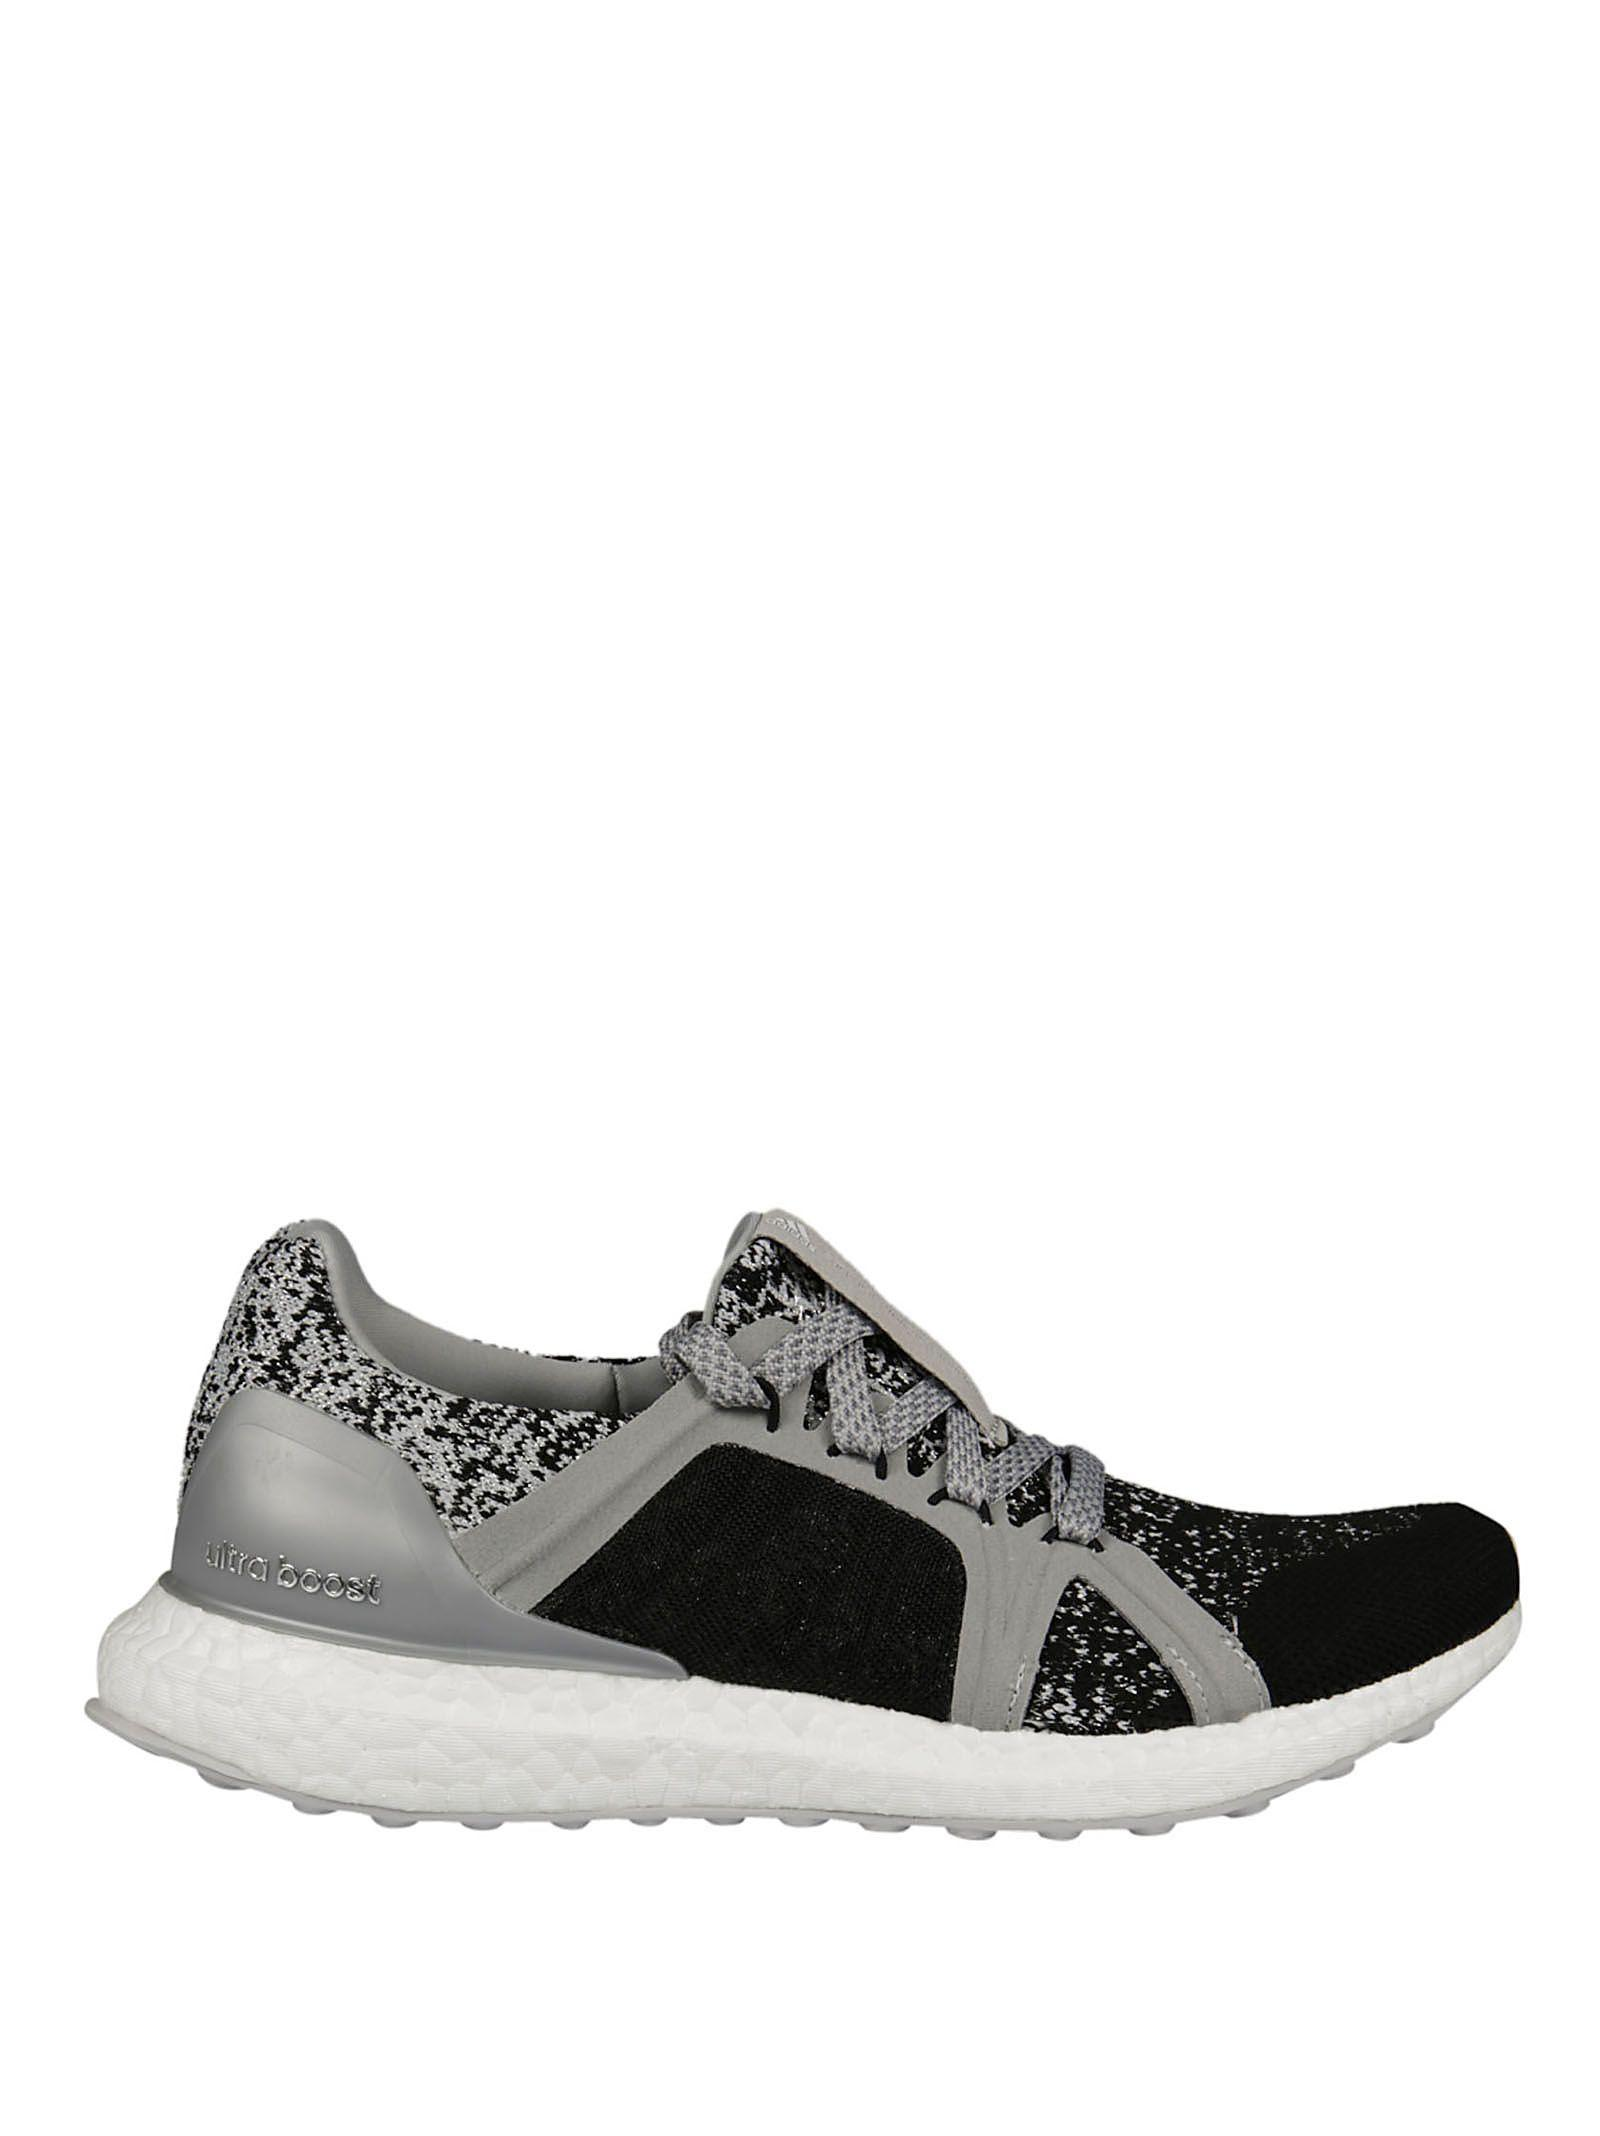 Adidas By Stella Mccartney Black Silver Ultraboost Low Sneakers In Black-Silver